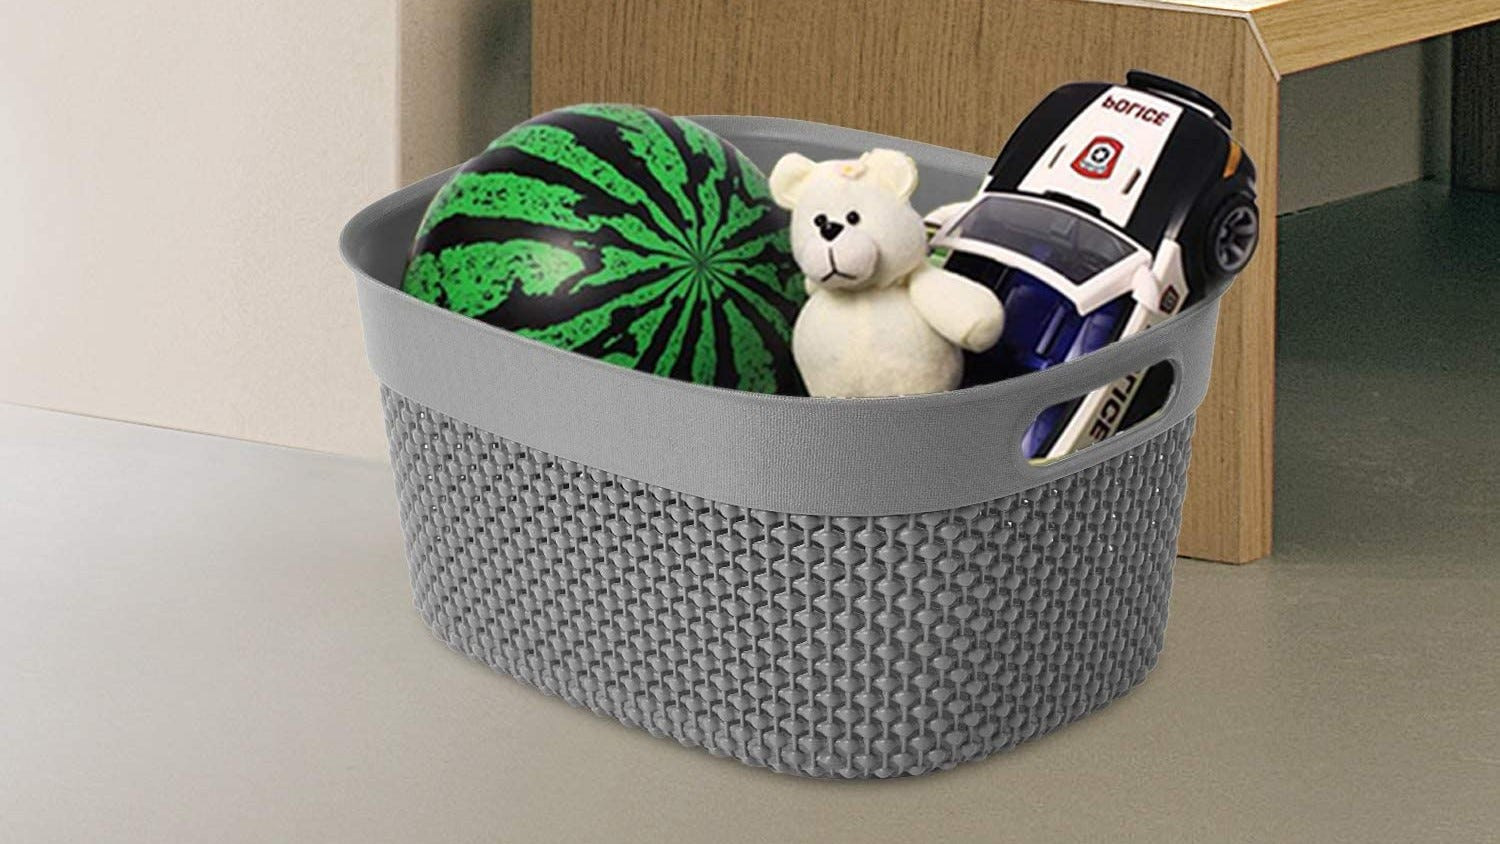 Cute curved plastic basket with toys inside.